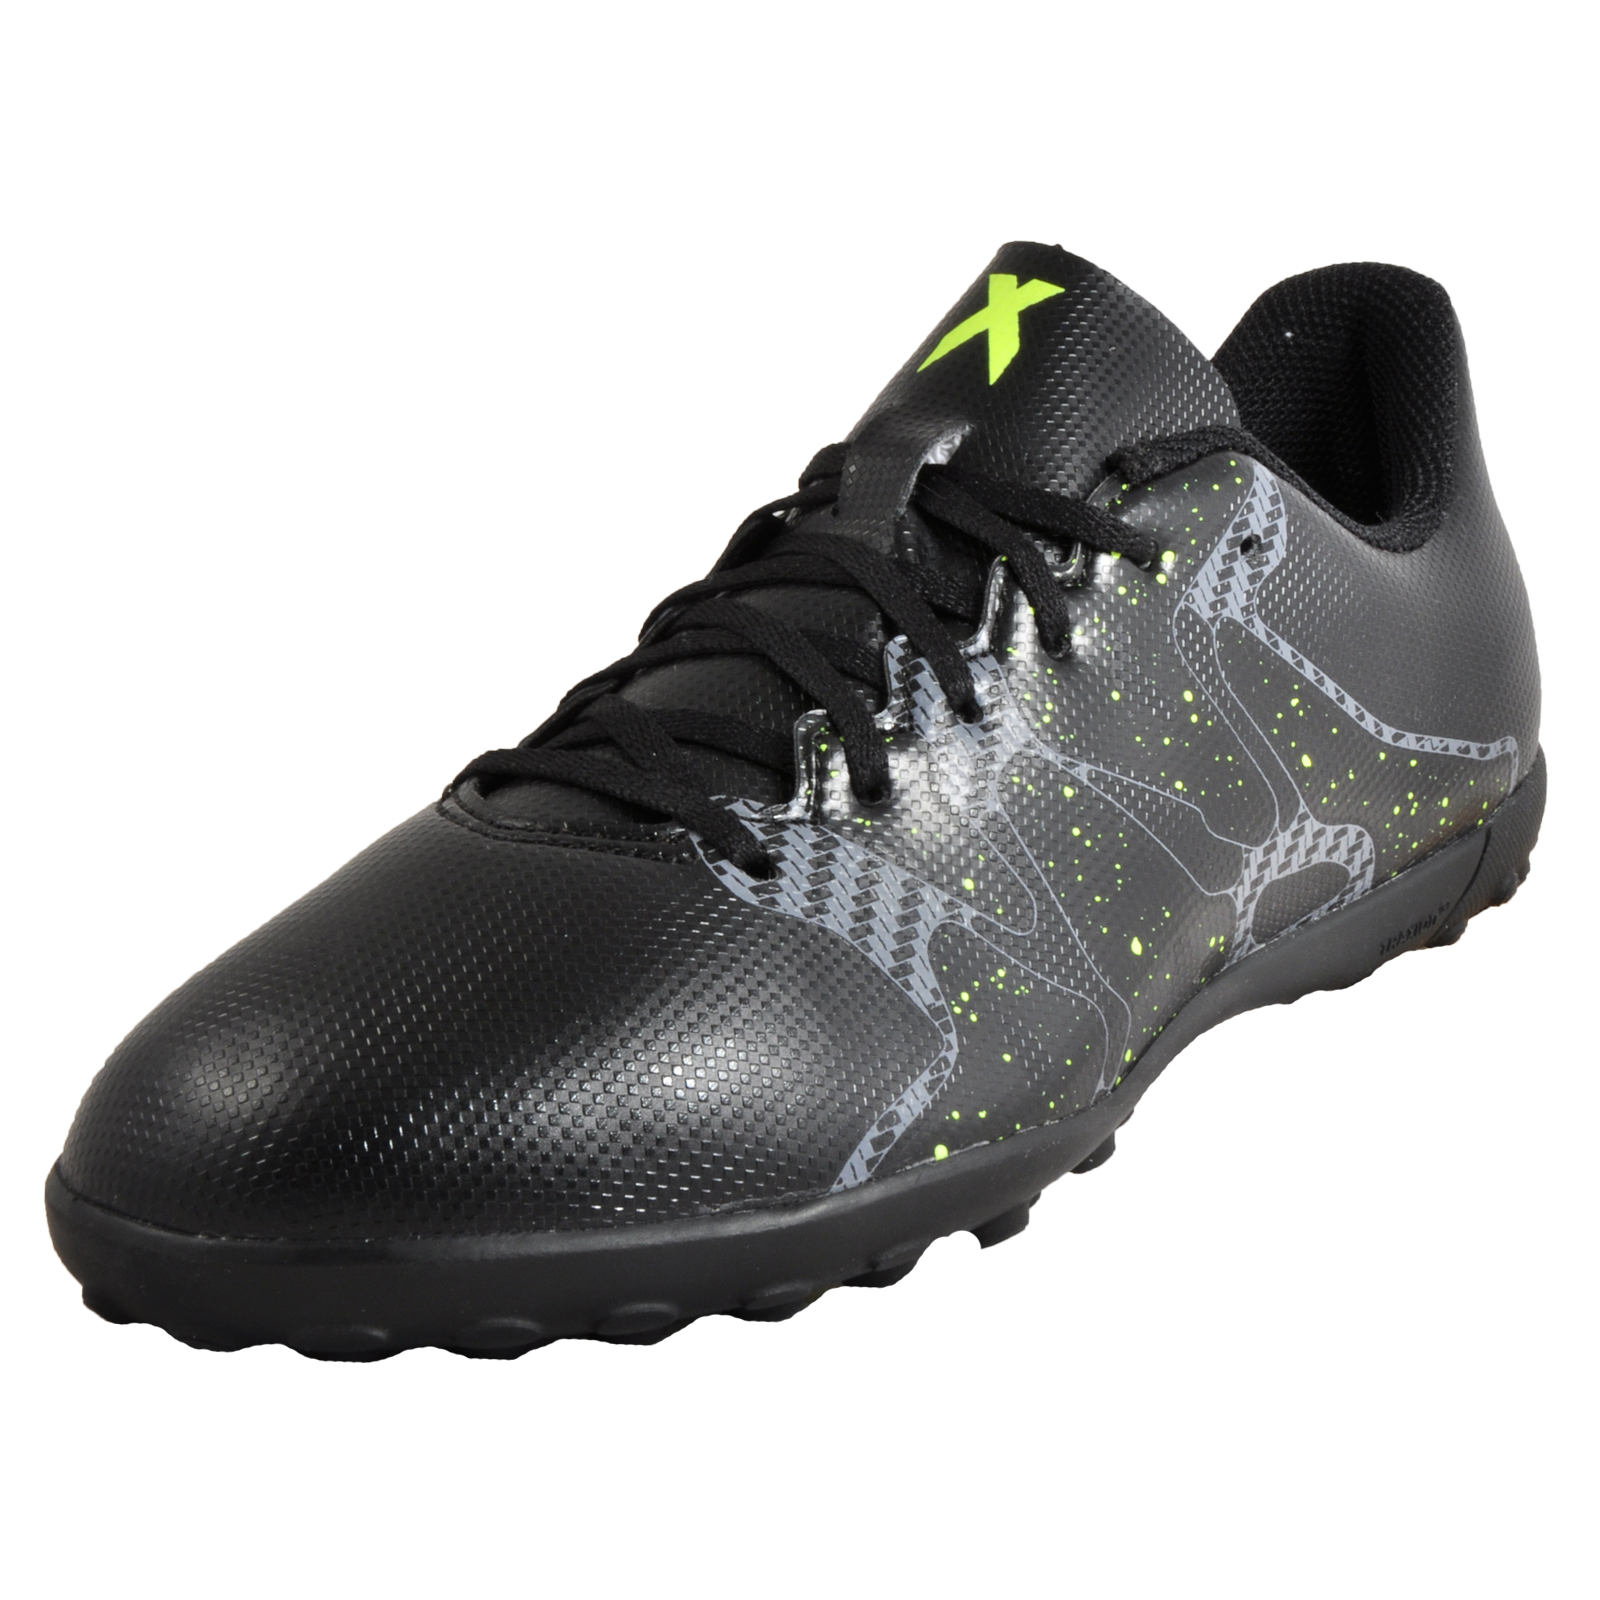 competitive price e8d3b a8604 Details about Adidas X 15.4 TF Junior Kids Boys Football Astro Turf Trainers  Black